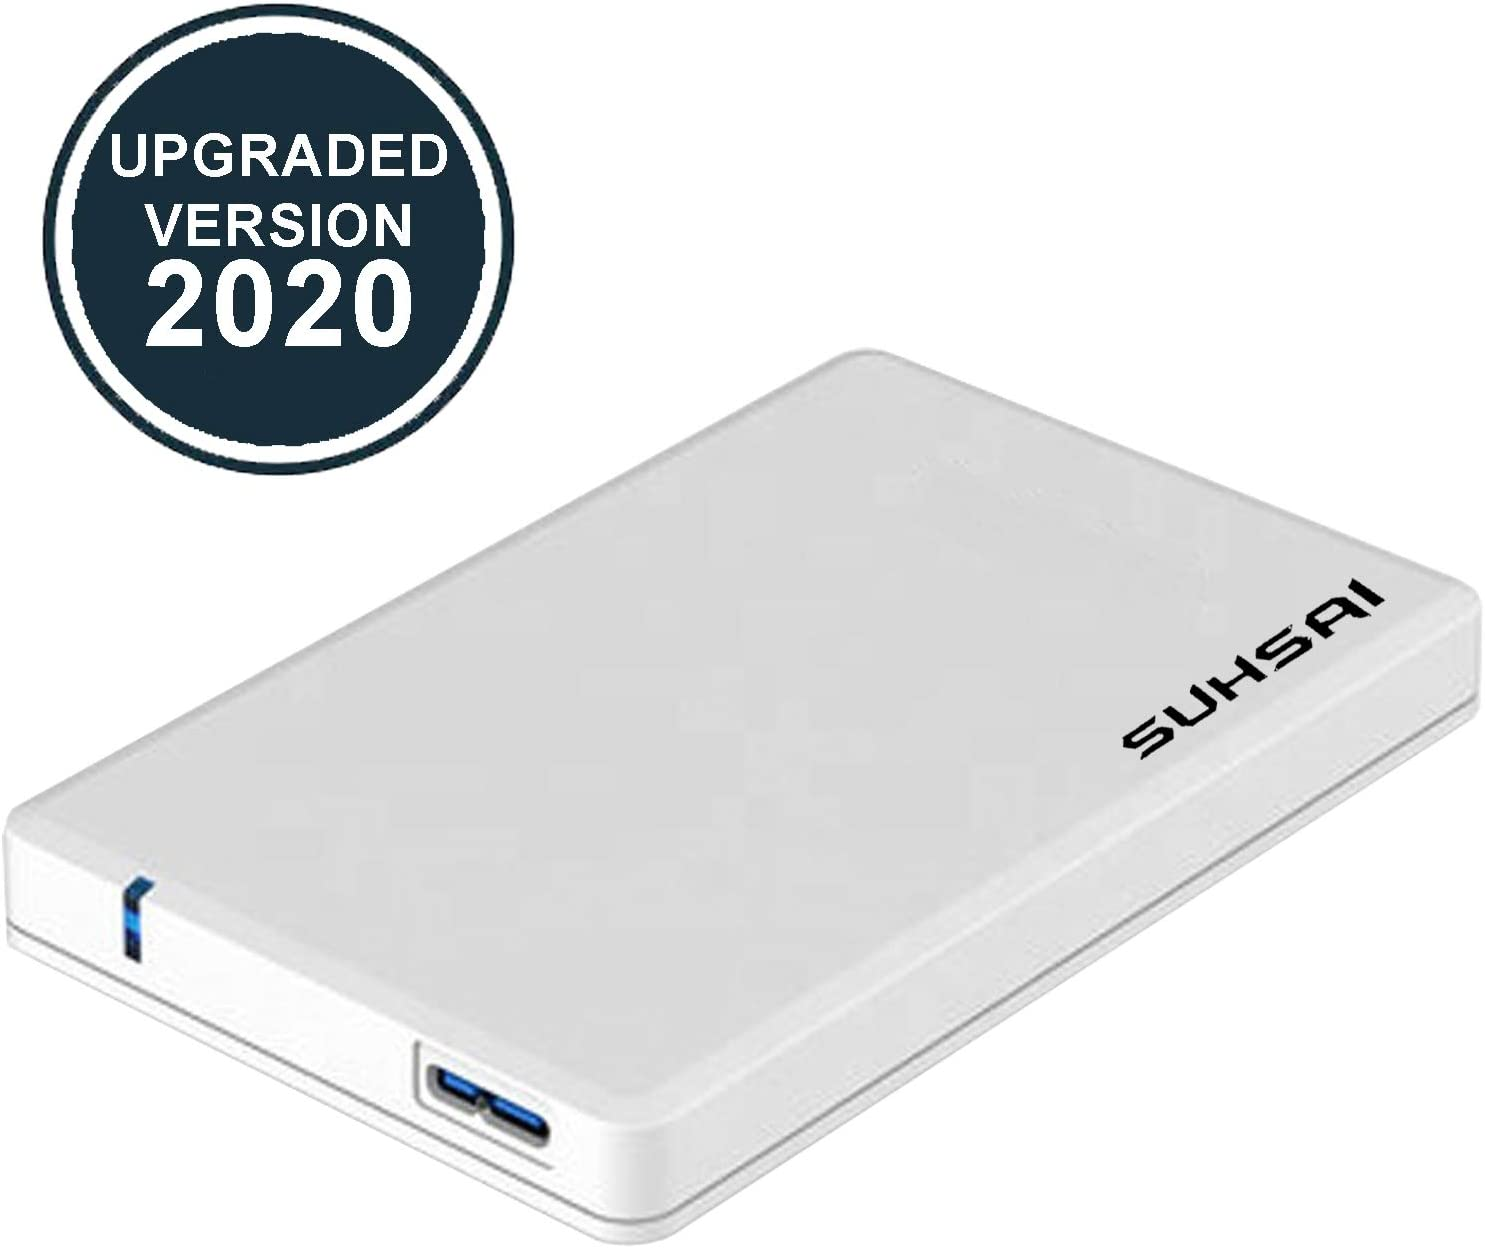 "Suhsai External Hard Drive HDD 2.5"" USB 3.0 Ultra Fast Slim Drive, Portable Hard Drive for Storage, Back up for PC, MAC, Desktop, Laptop, MacBook, Chromebook, Xbox, PS3, PS4, Smart Tv (500GB, White)"